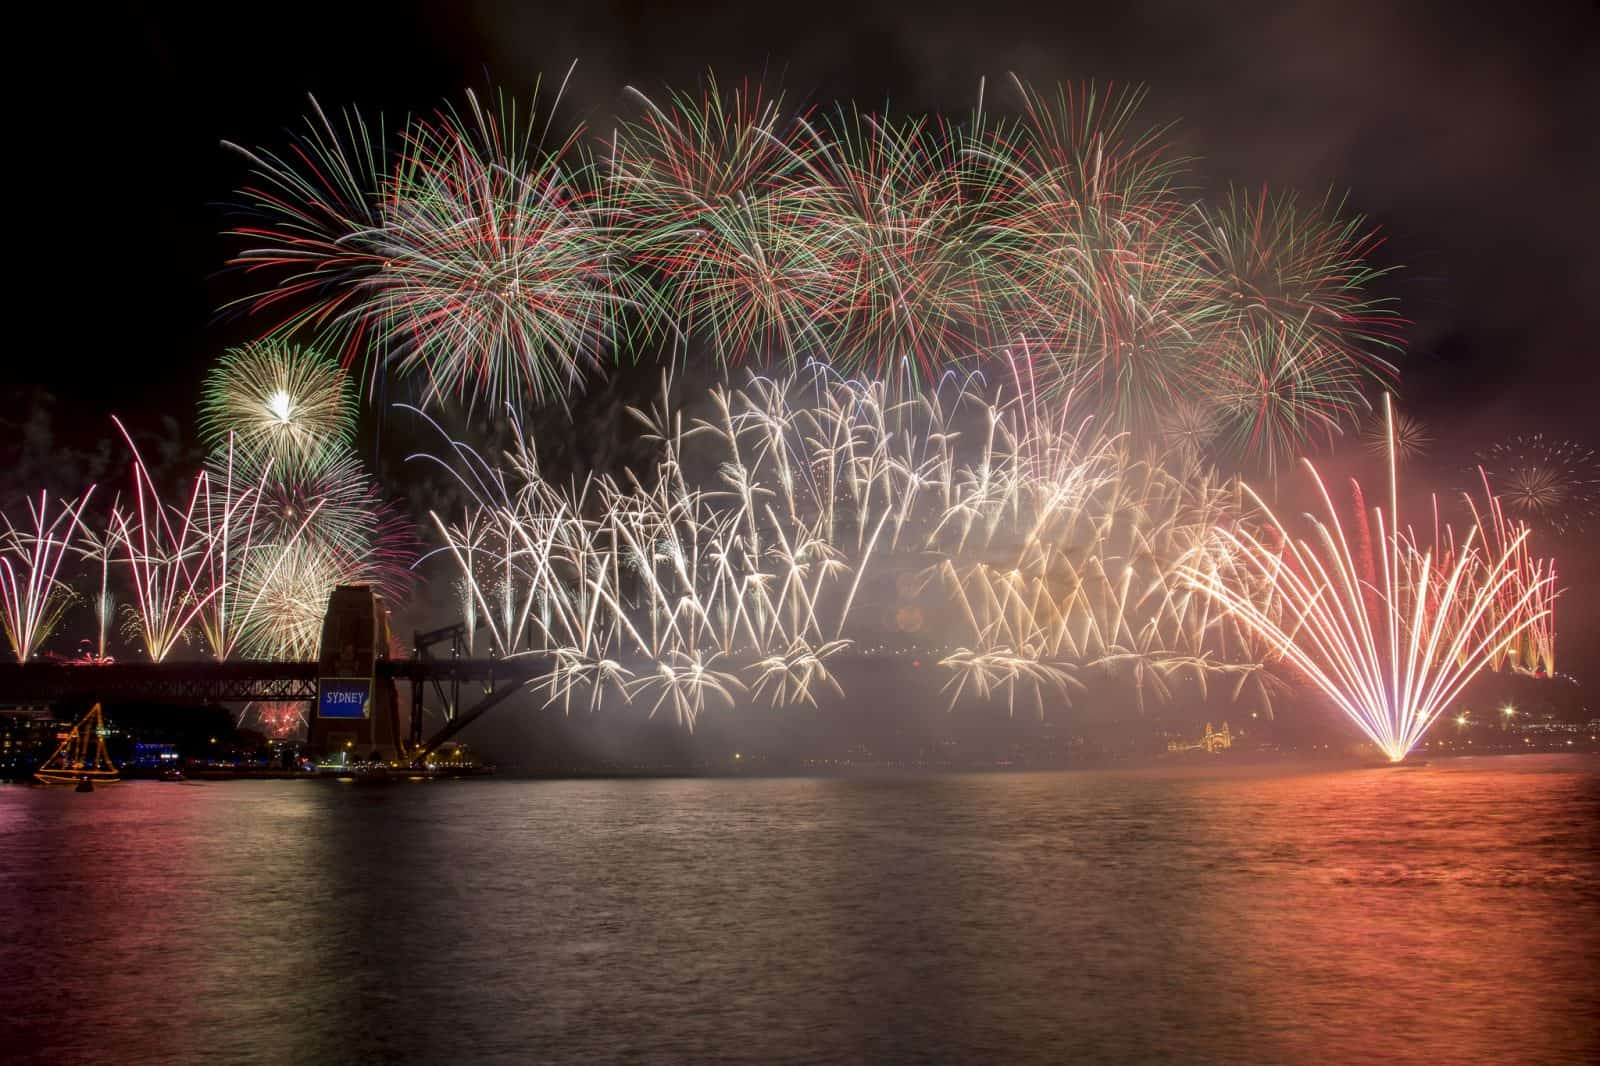 New Year's Eve in Sydney